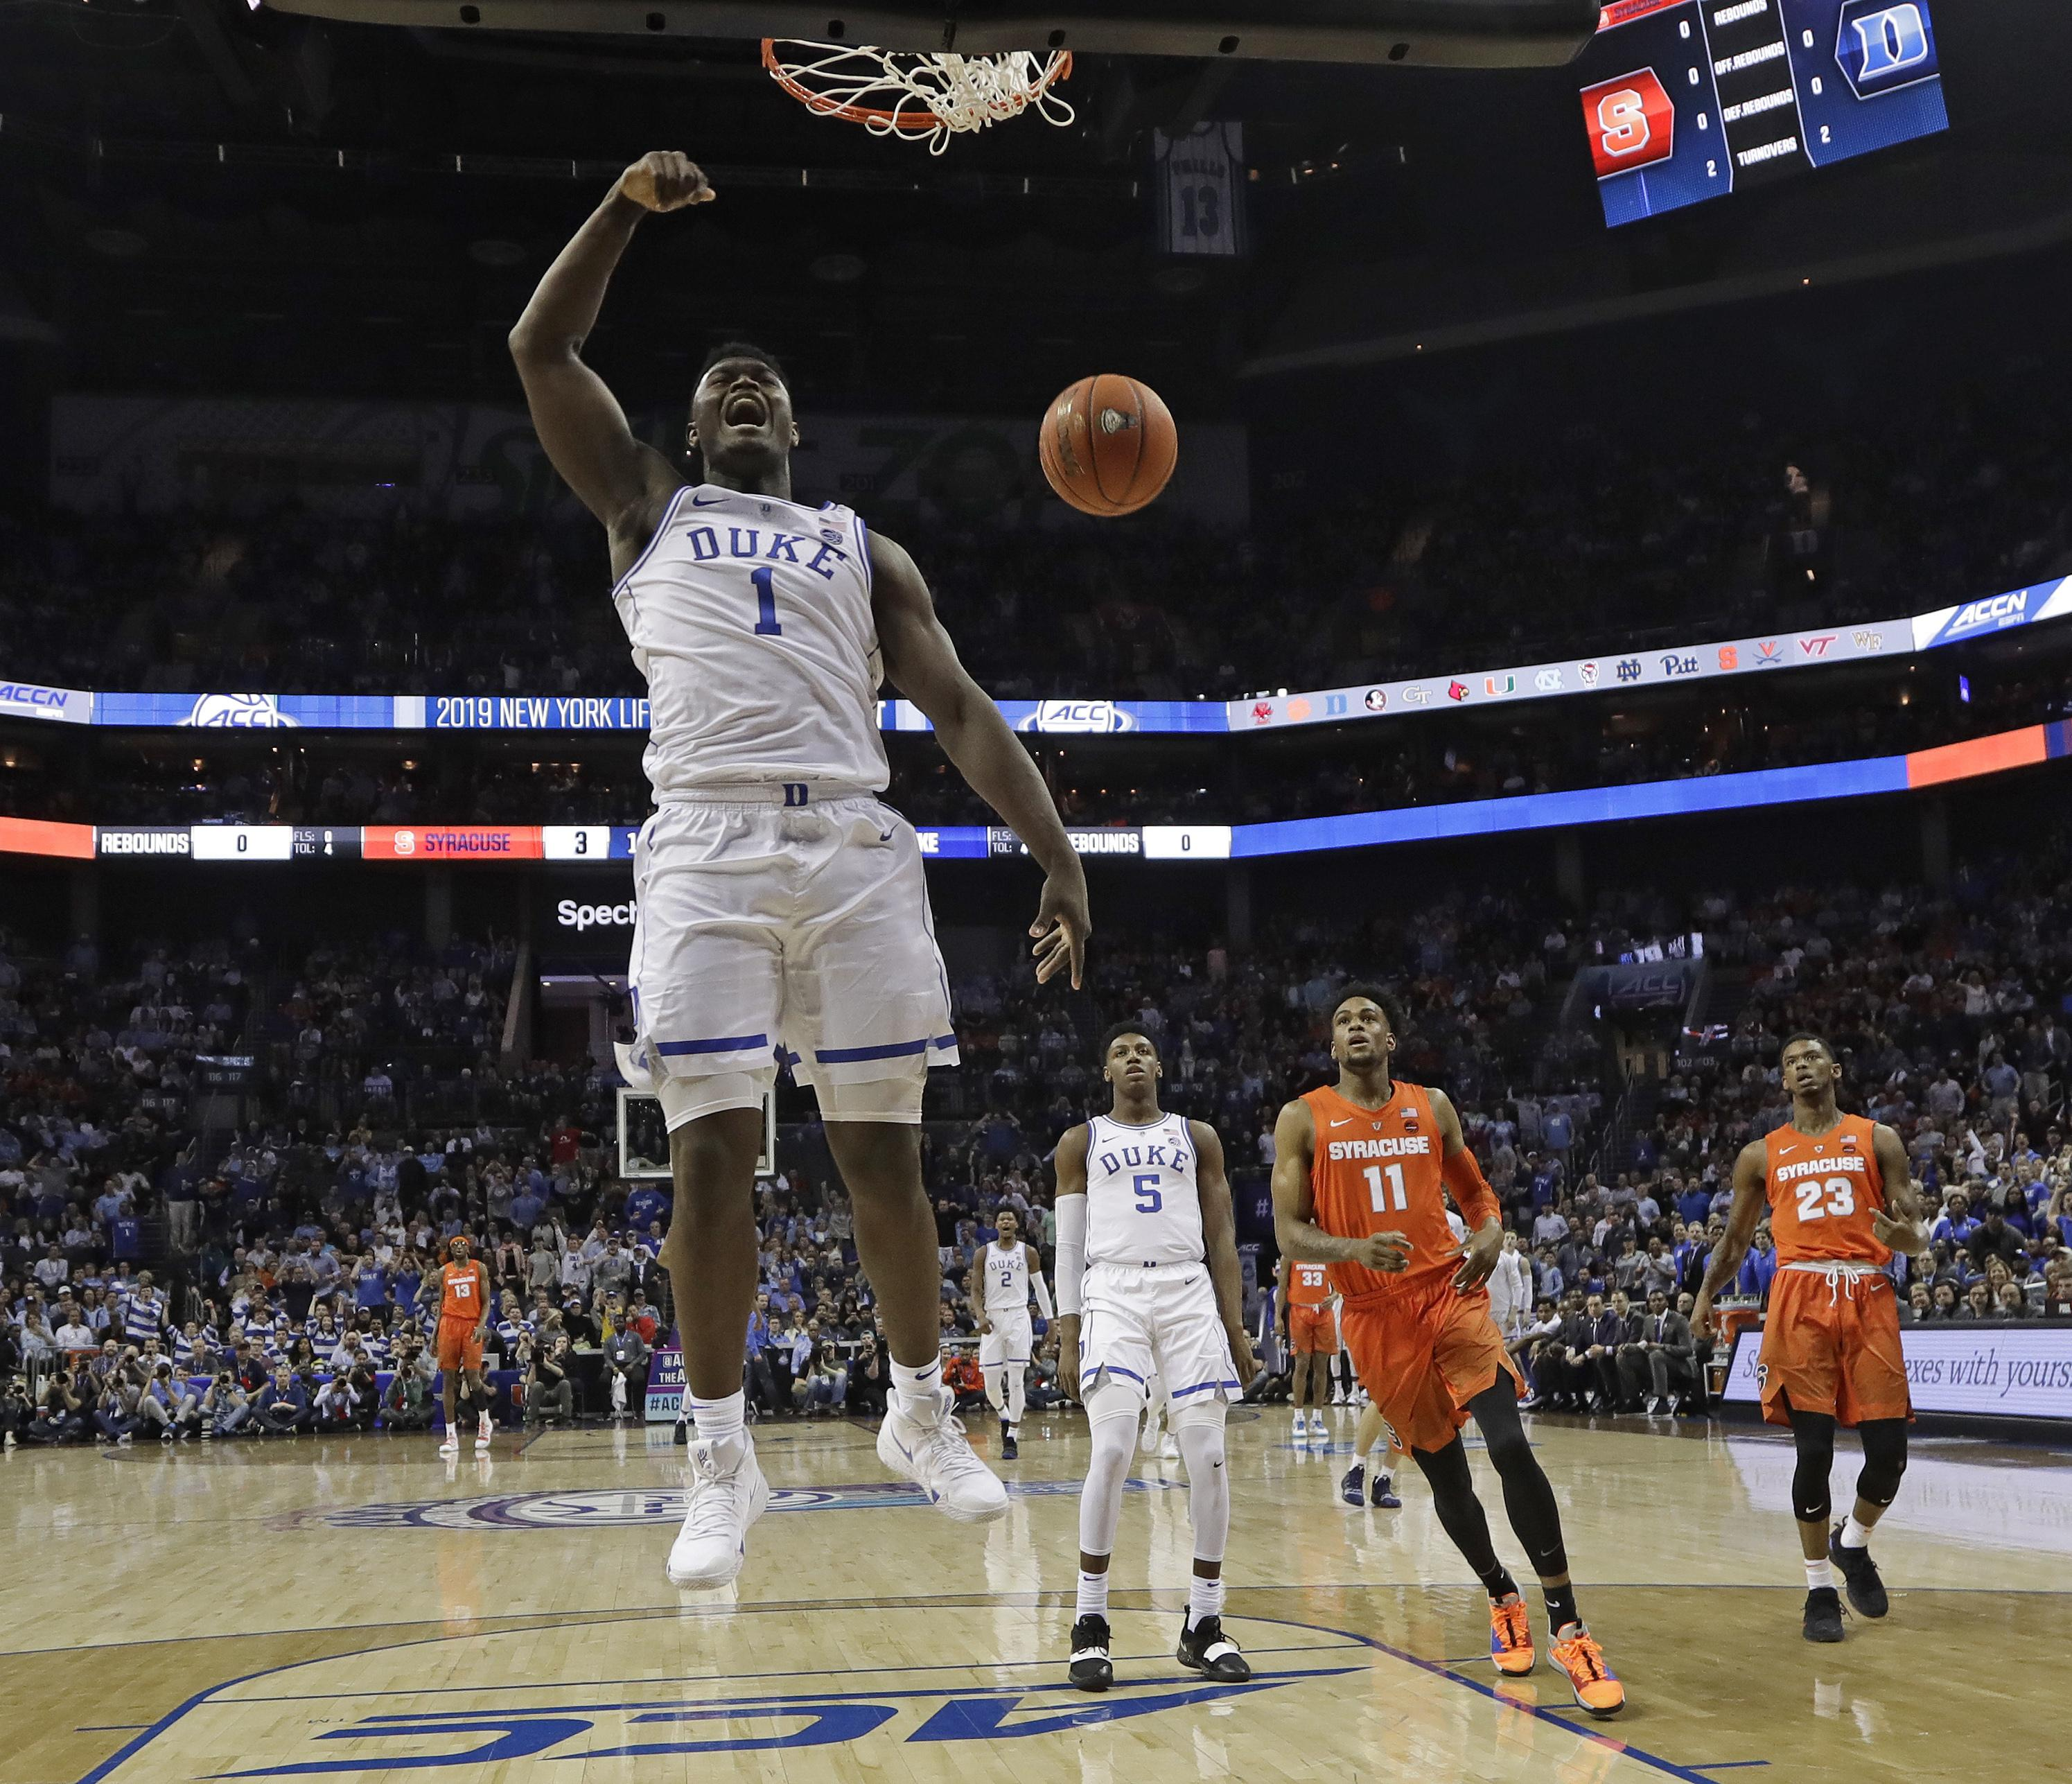 b4bfe0aea942 Duke s Zion Williamson (1) reacts after his dunk against Syracuse during  the first half